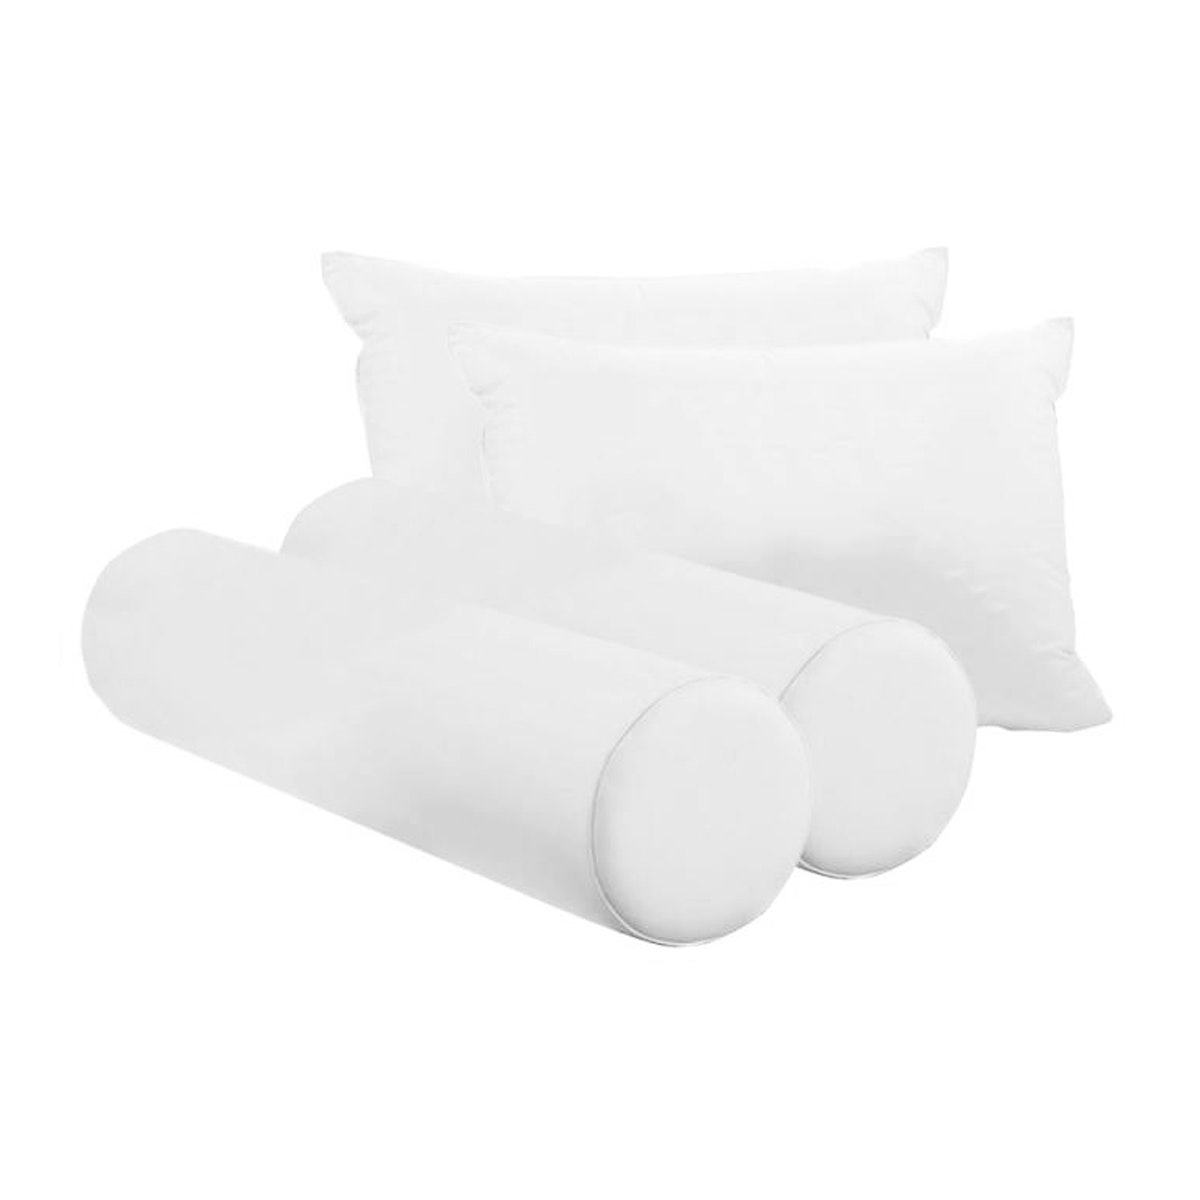 JYSK Pillow 2Pcs And Bolster 2Pcs